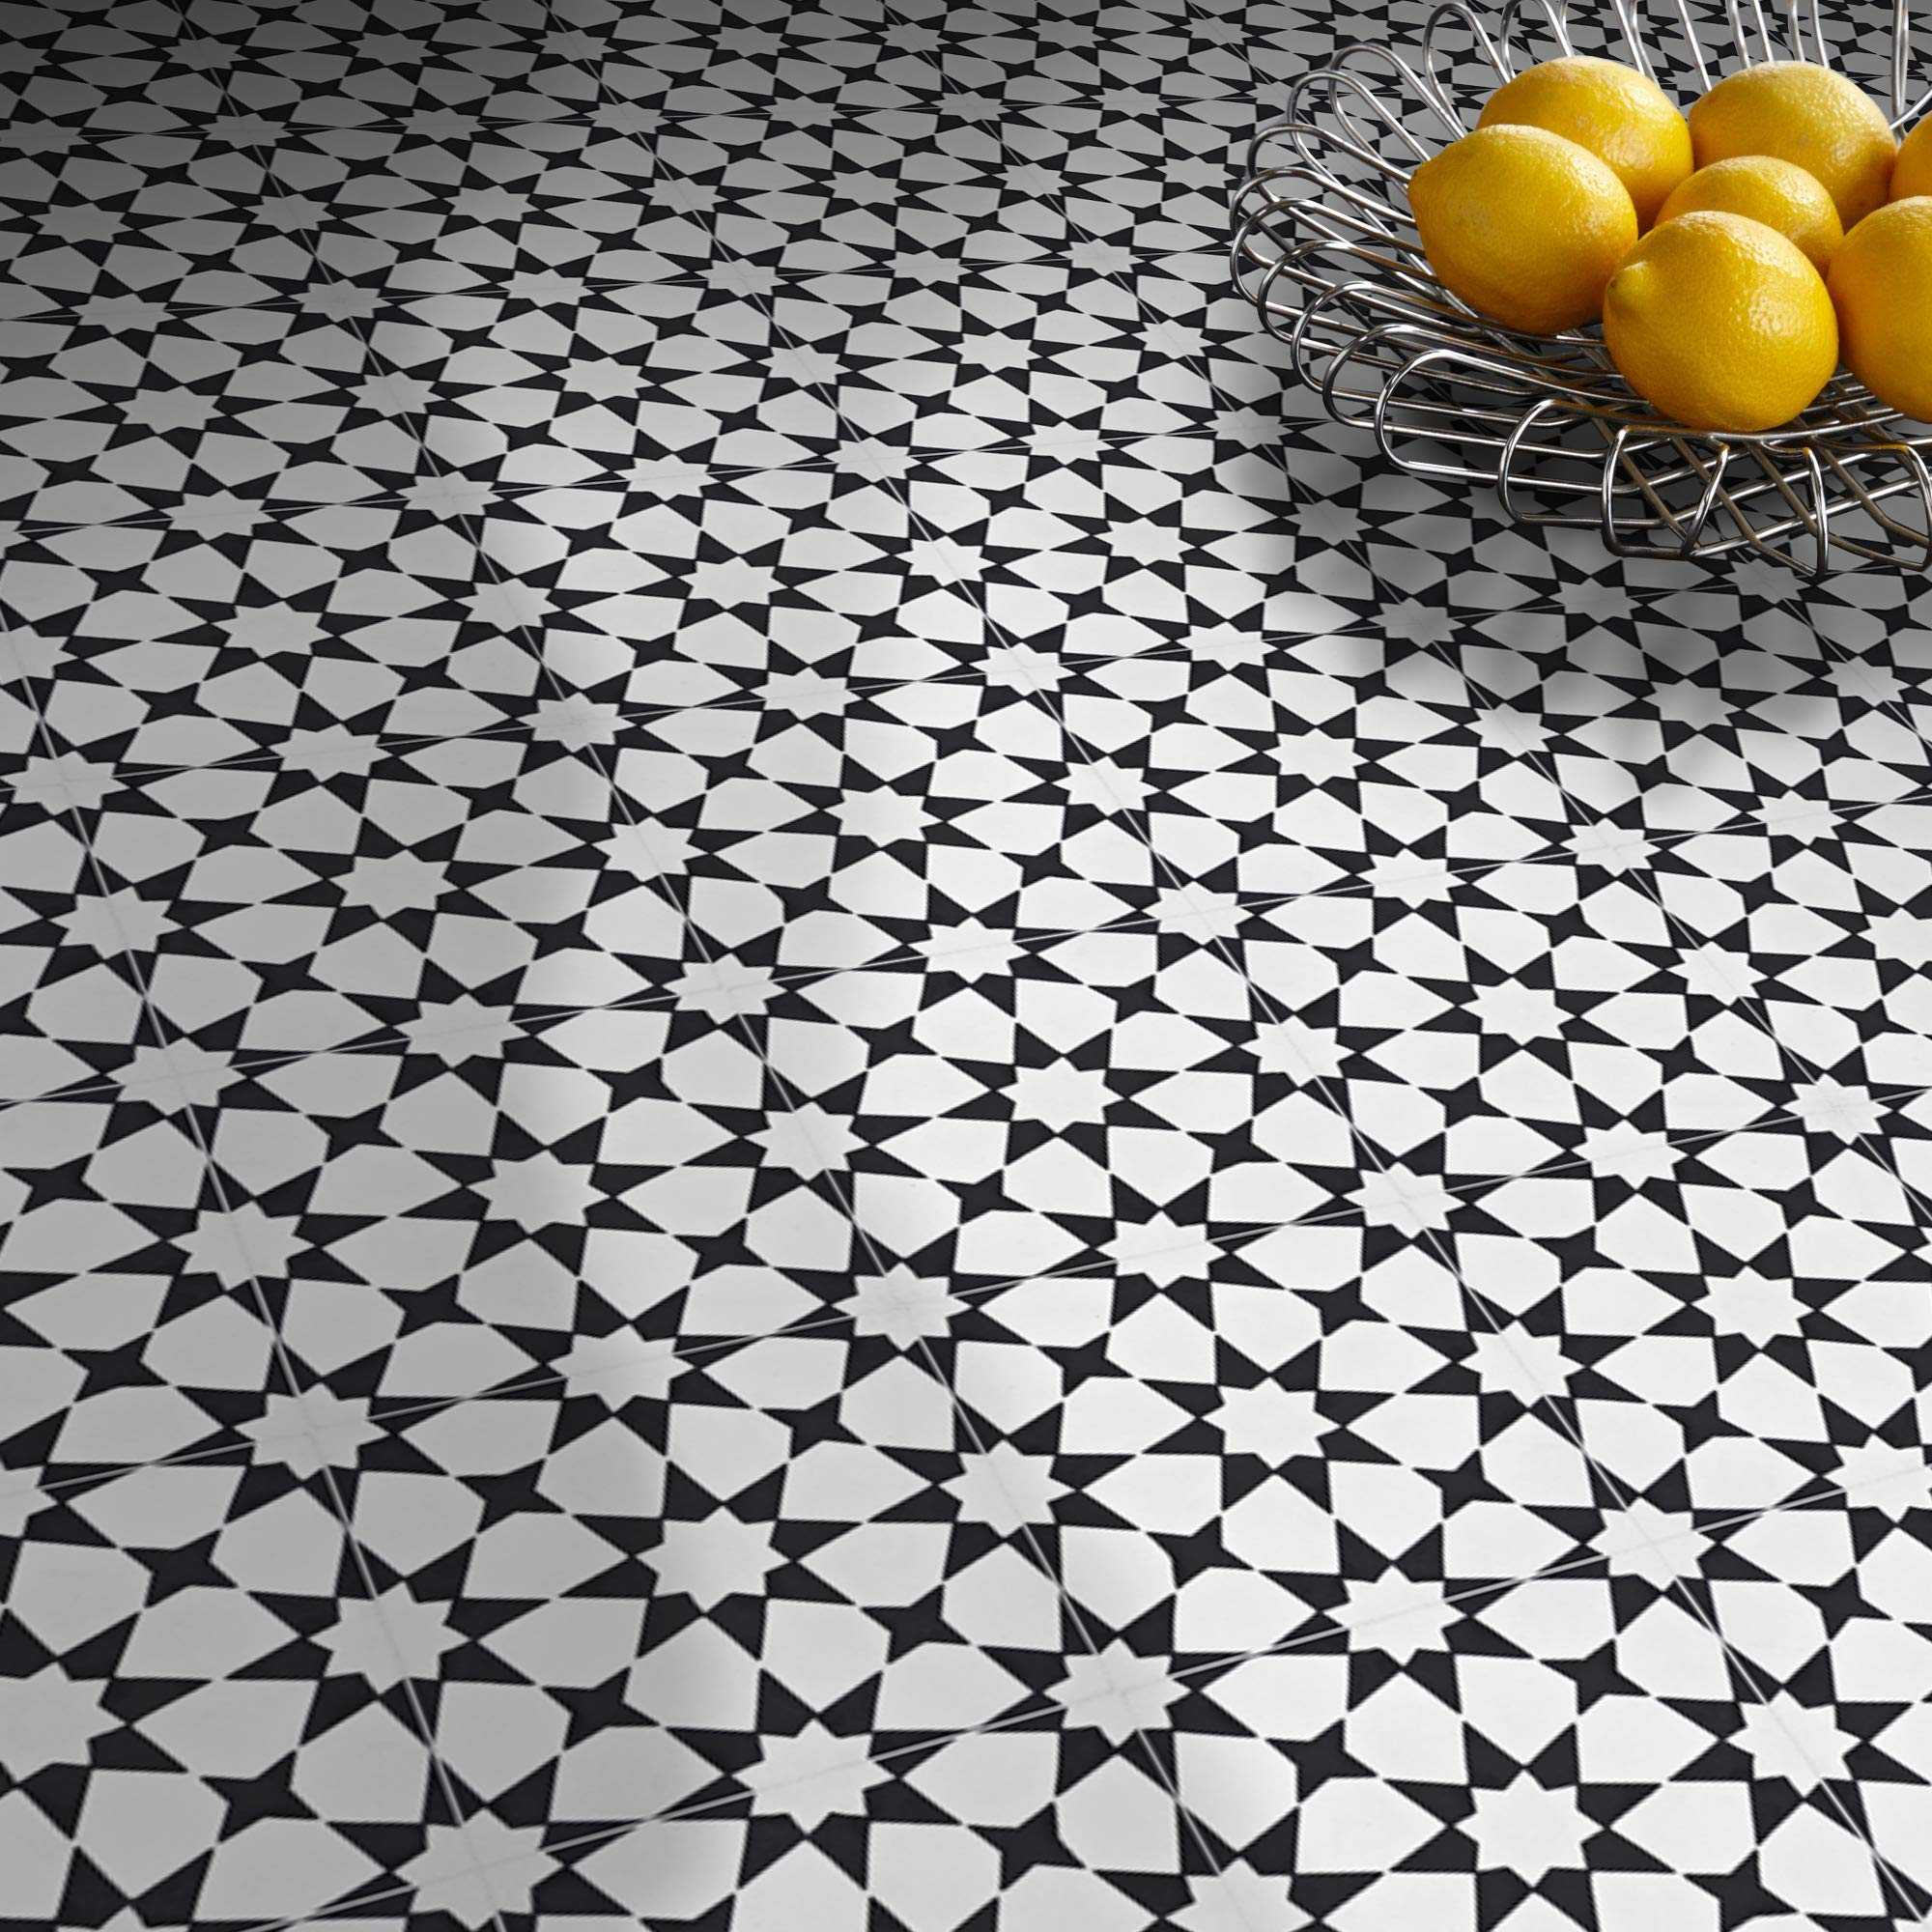 Moroccan Mosaic & Tile House CTP18-03 Medina 8''x8'' Handmade Cement Tile,Pack of 12 8'', White and Black